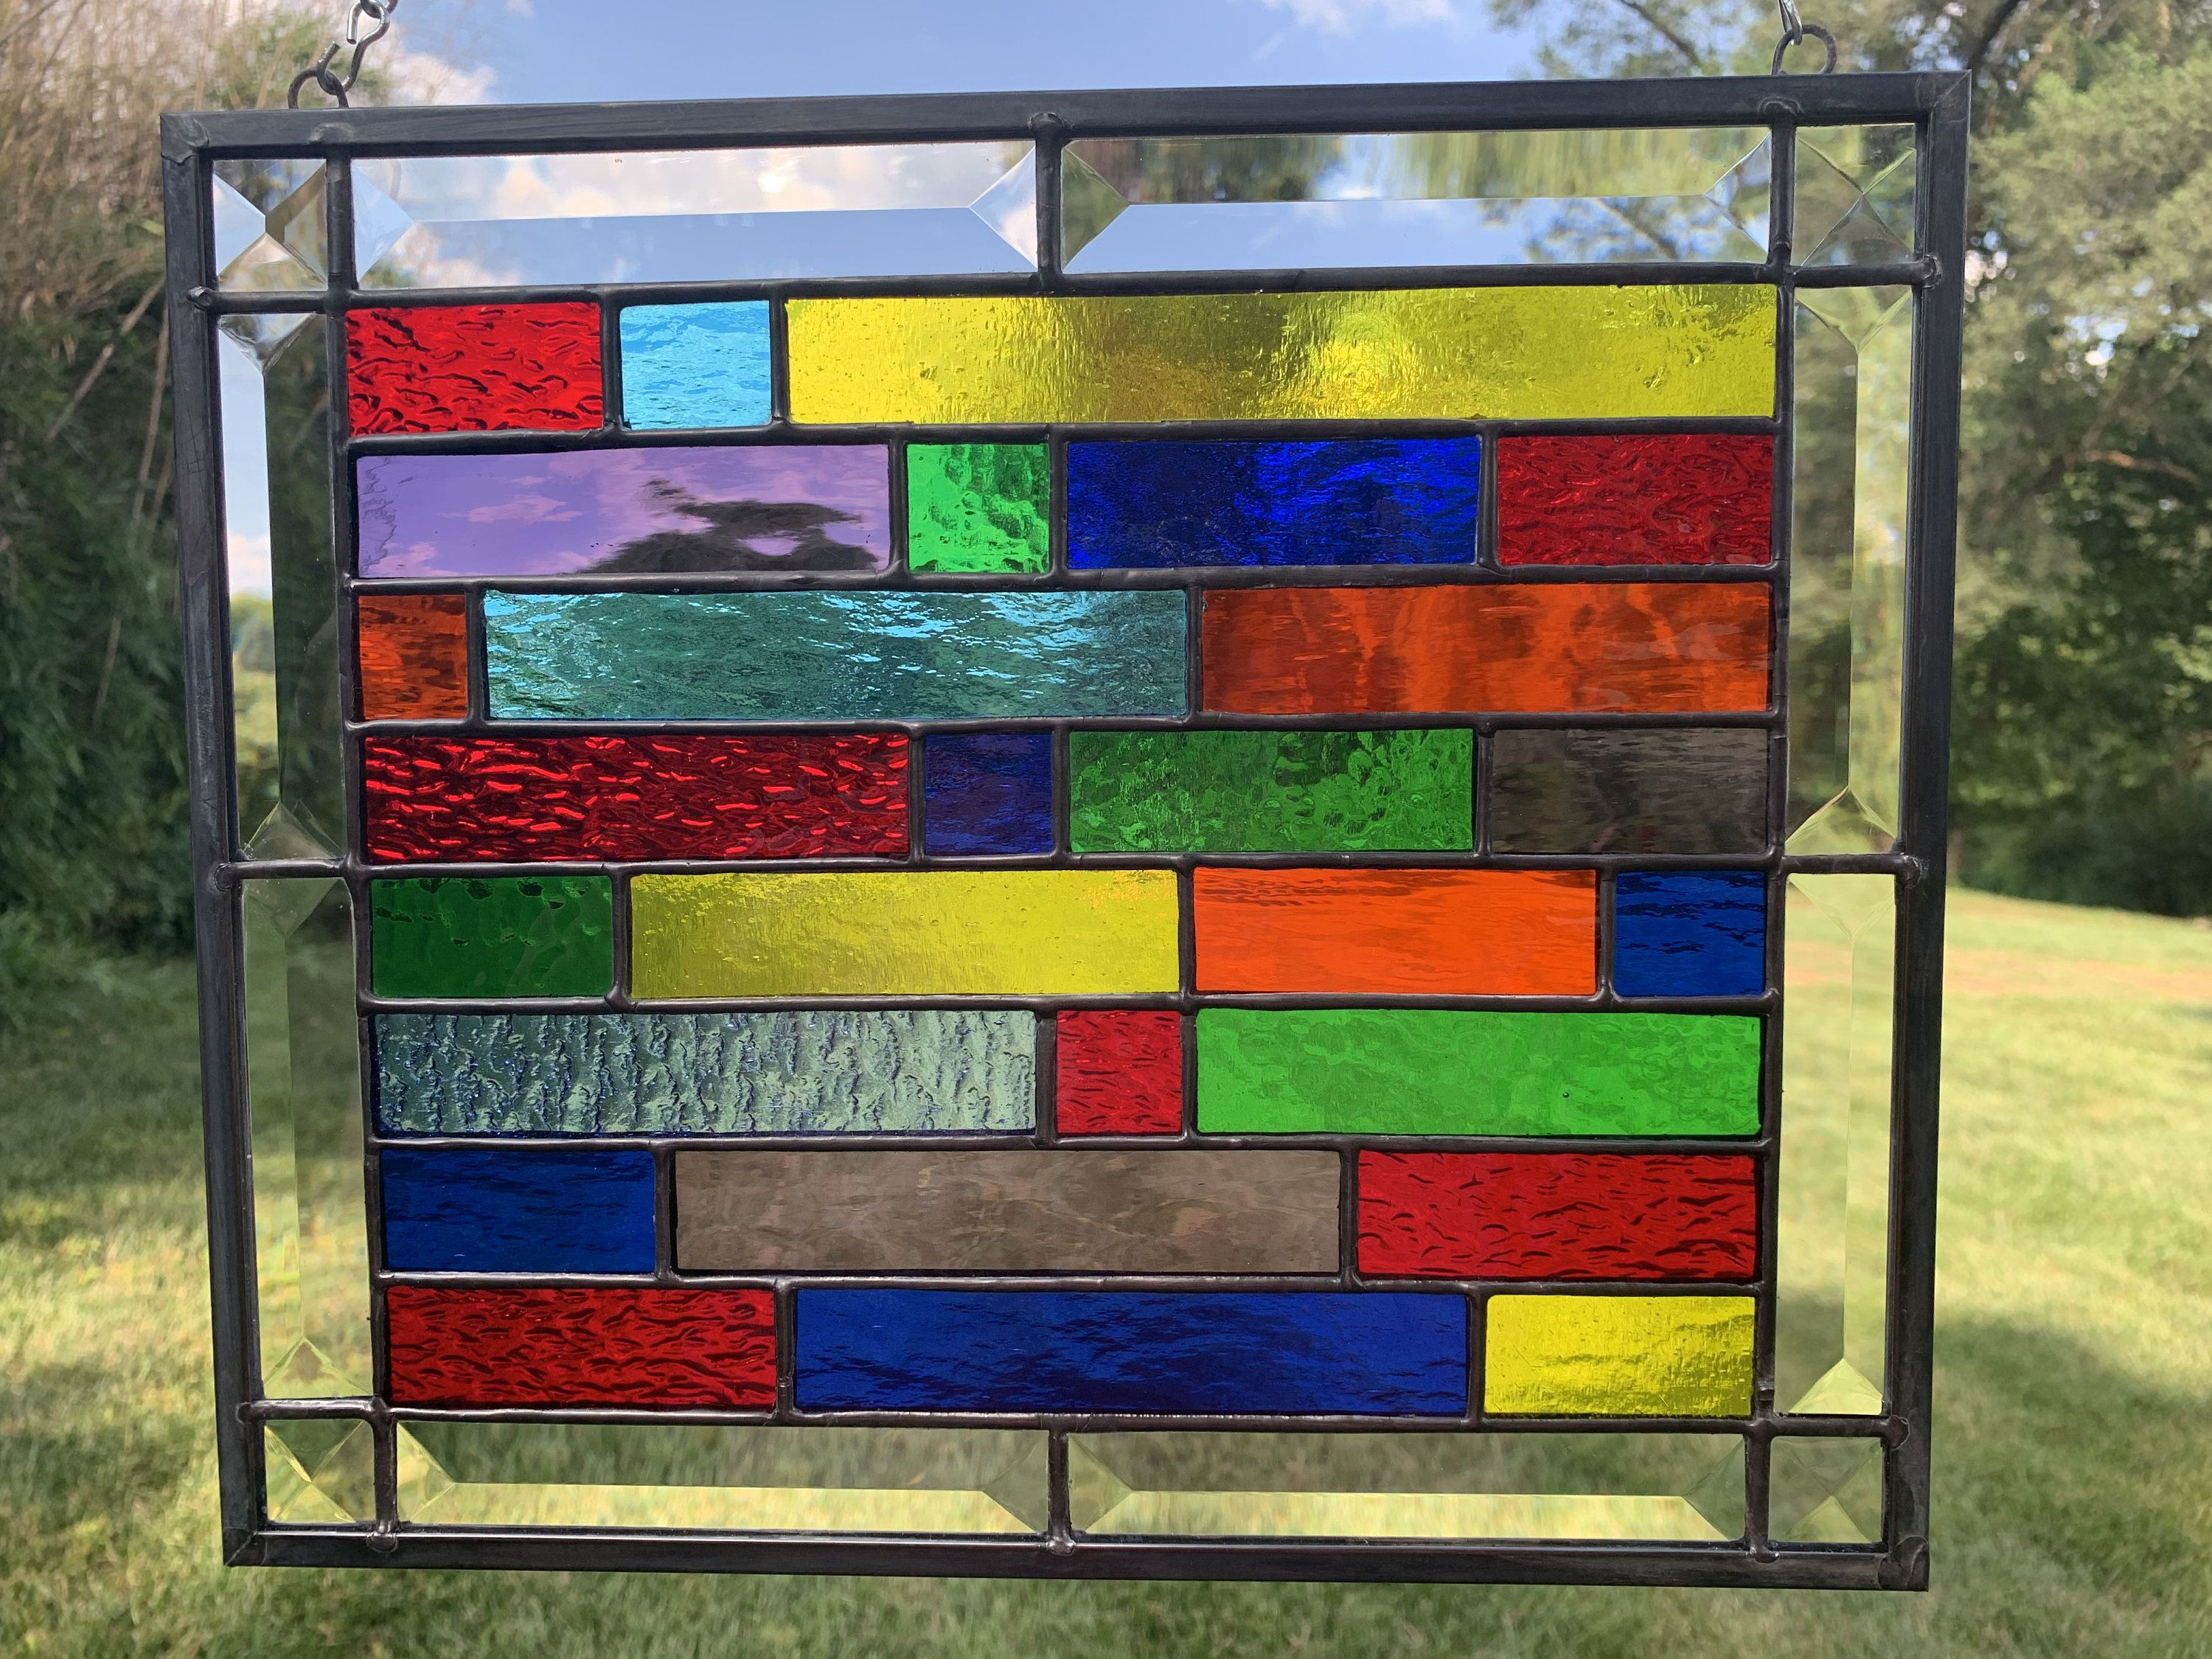 Colorful Stained Glass Panel Window Hanging 10 X 12 Church Window Brick Pattern Ge Stained Glass Patterns Stained Glass Panel Stained Glass Window Panel